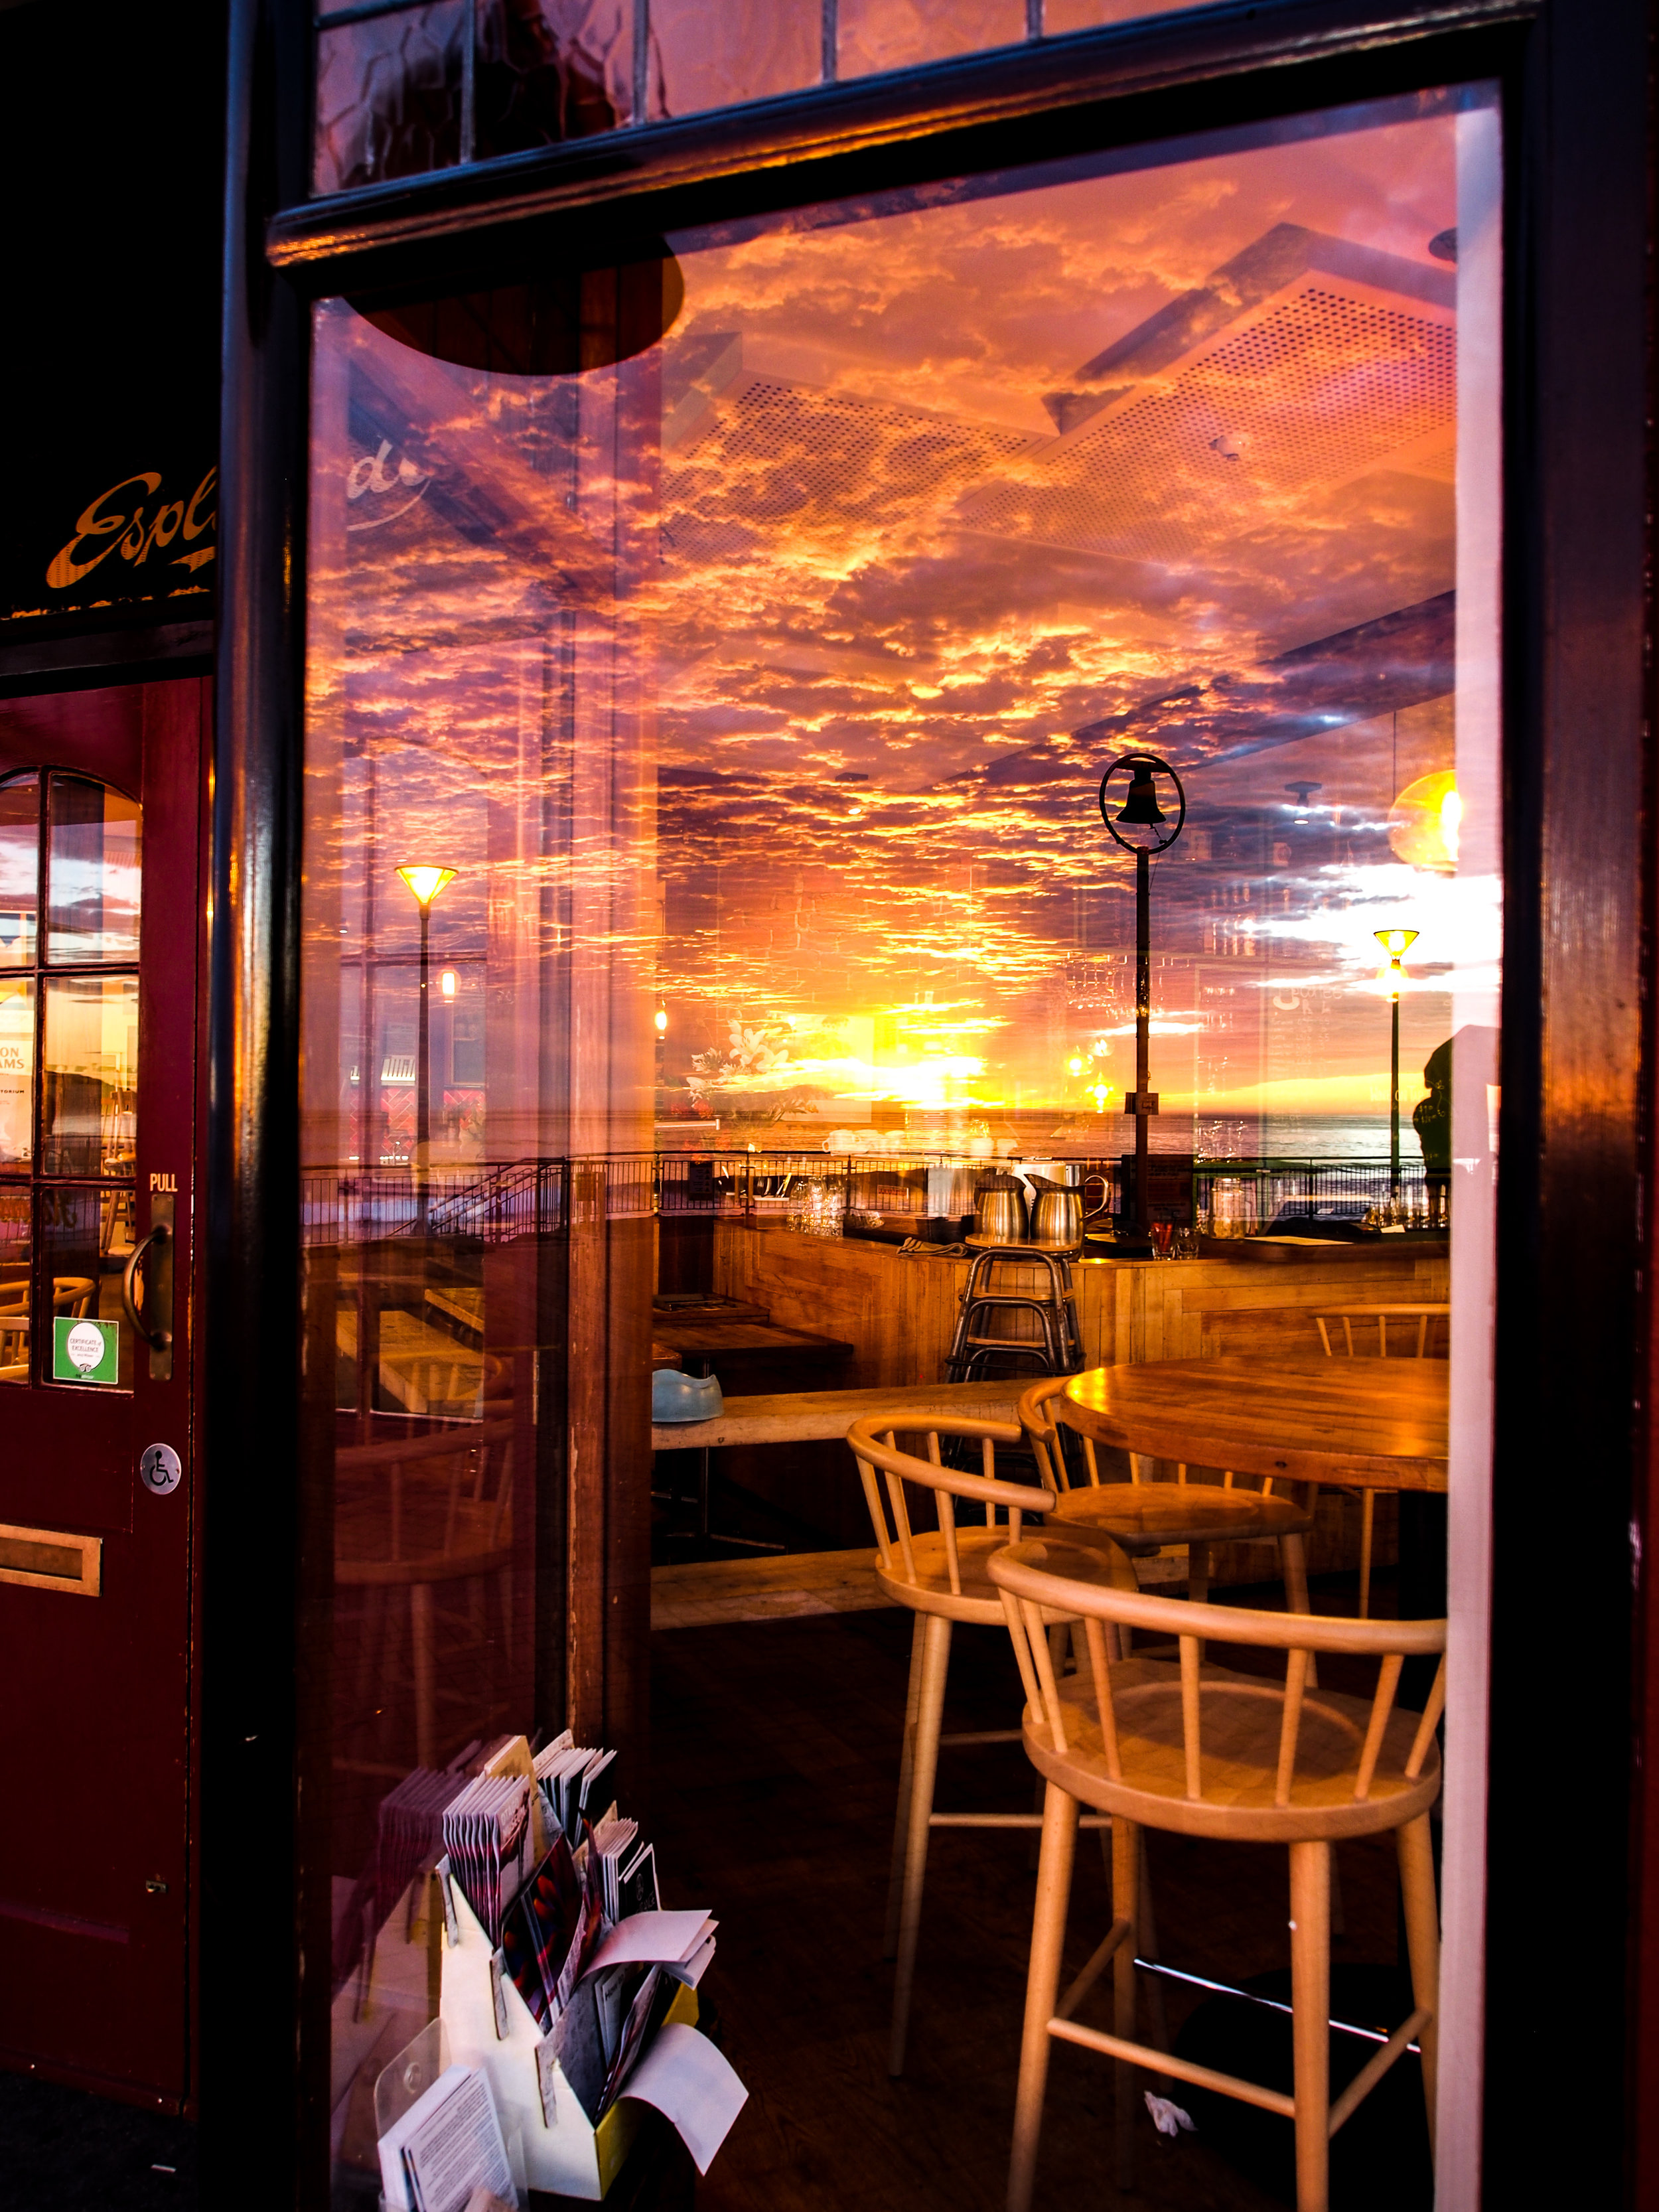 Sunrise at St Clair Dunedin reflected in The Esplanade window